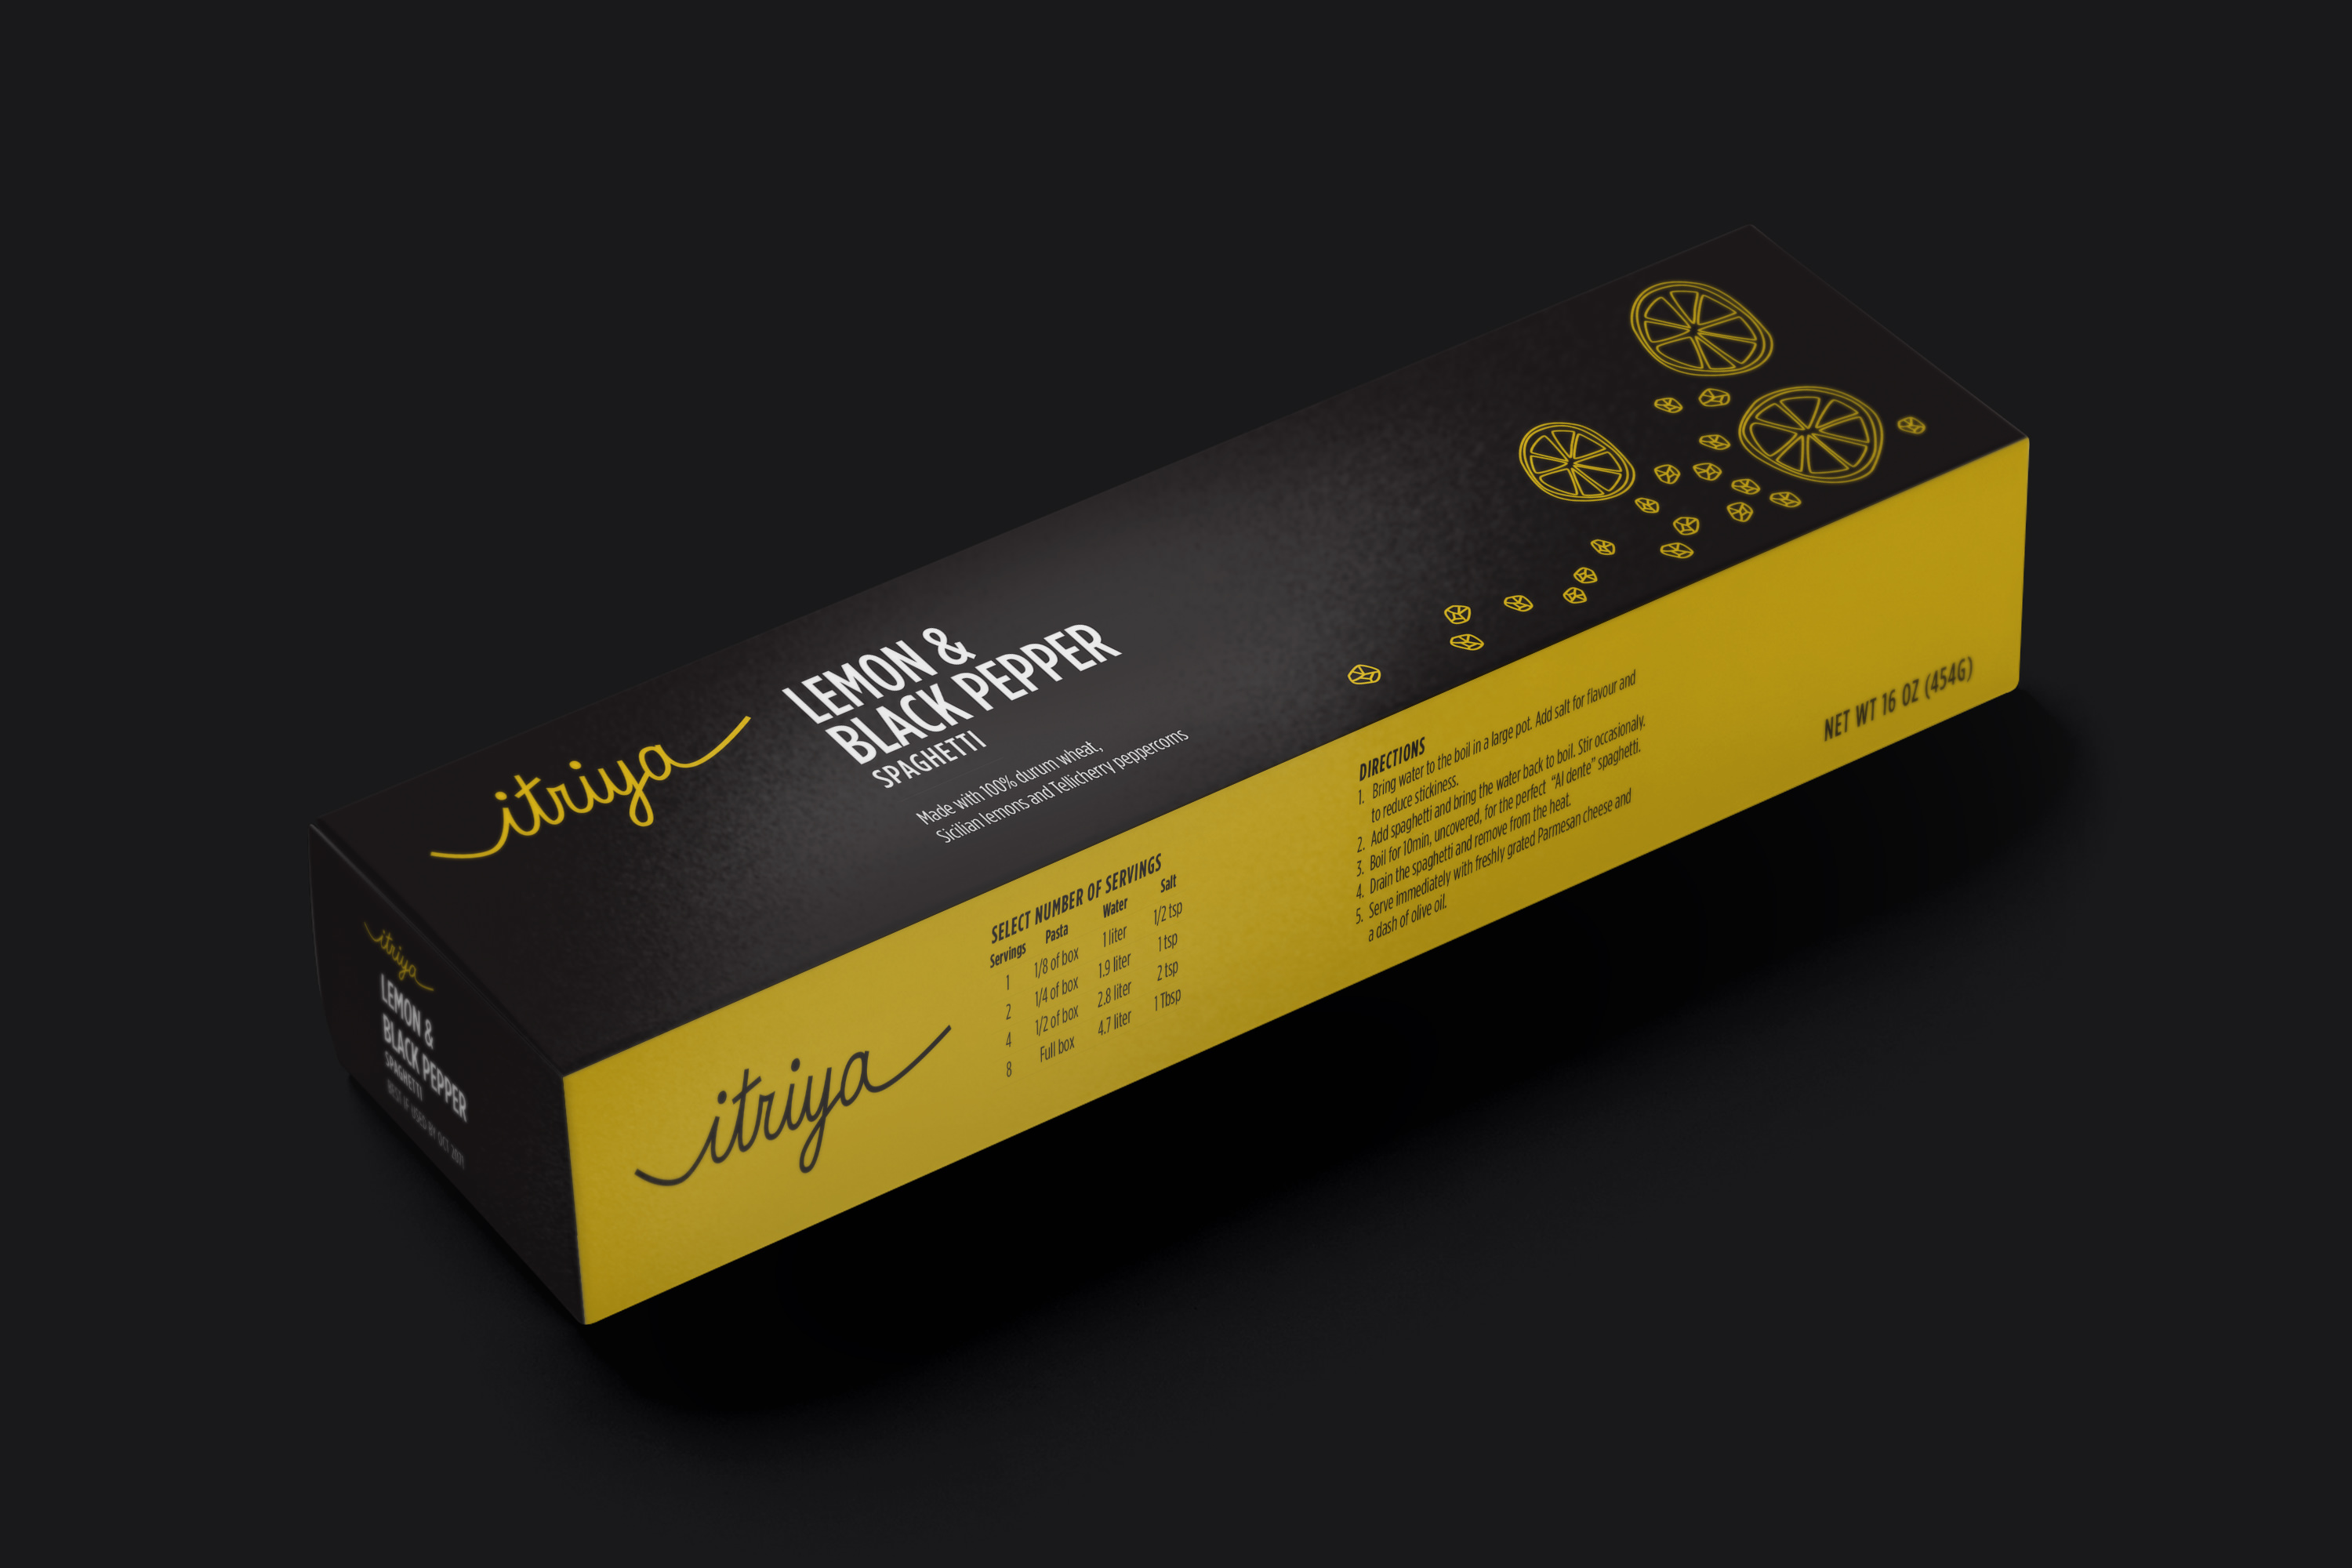 Packaging mockup for Itraya spaghetti.